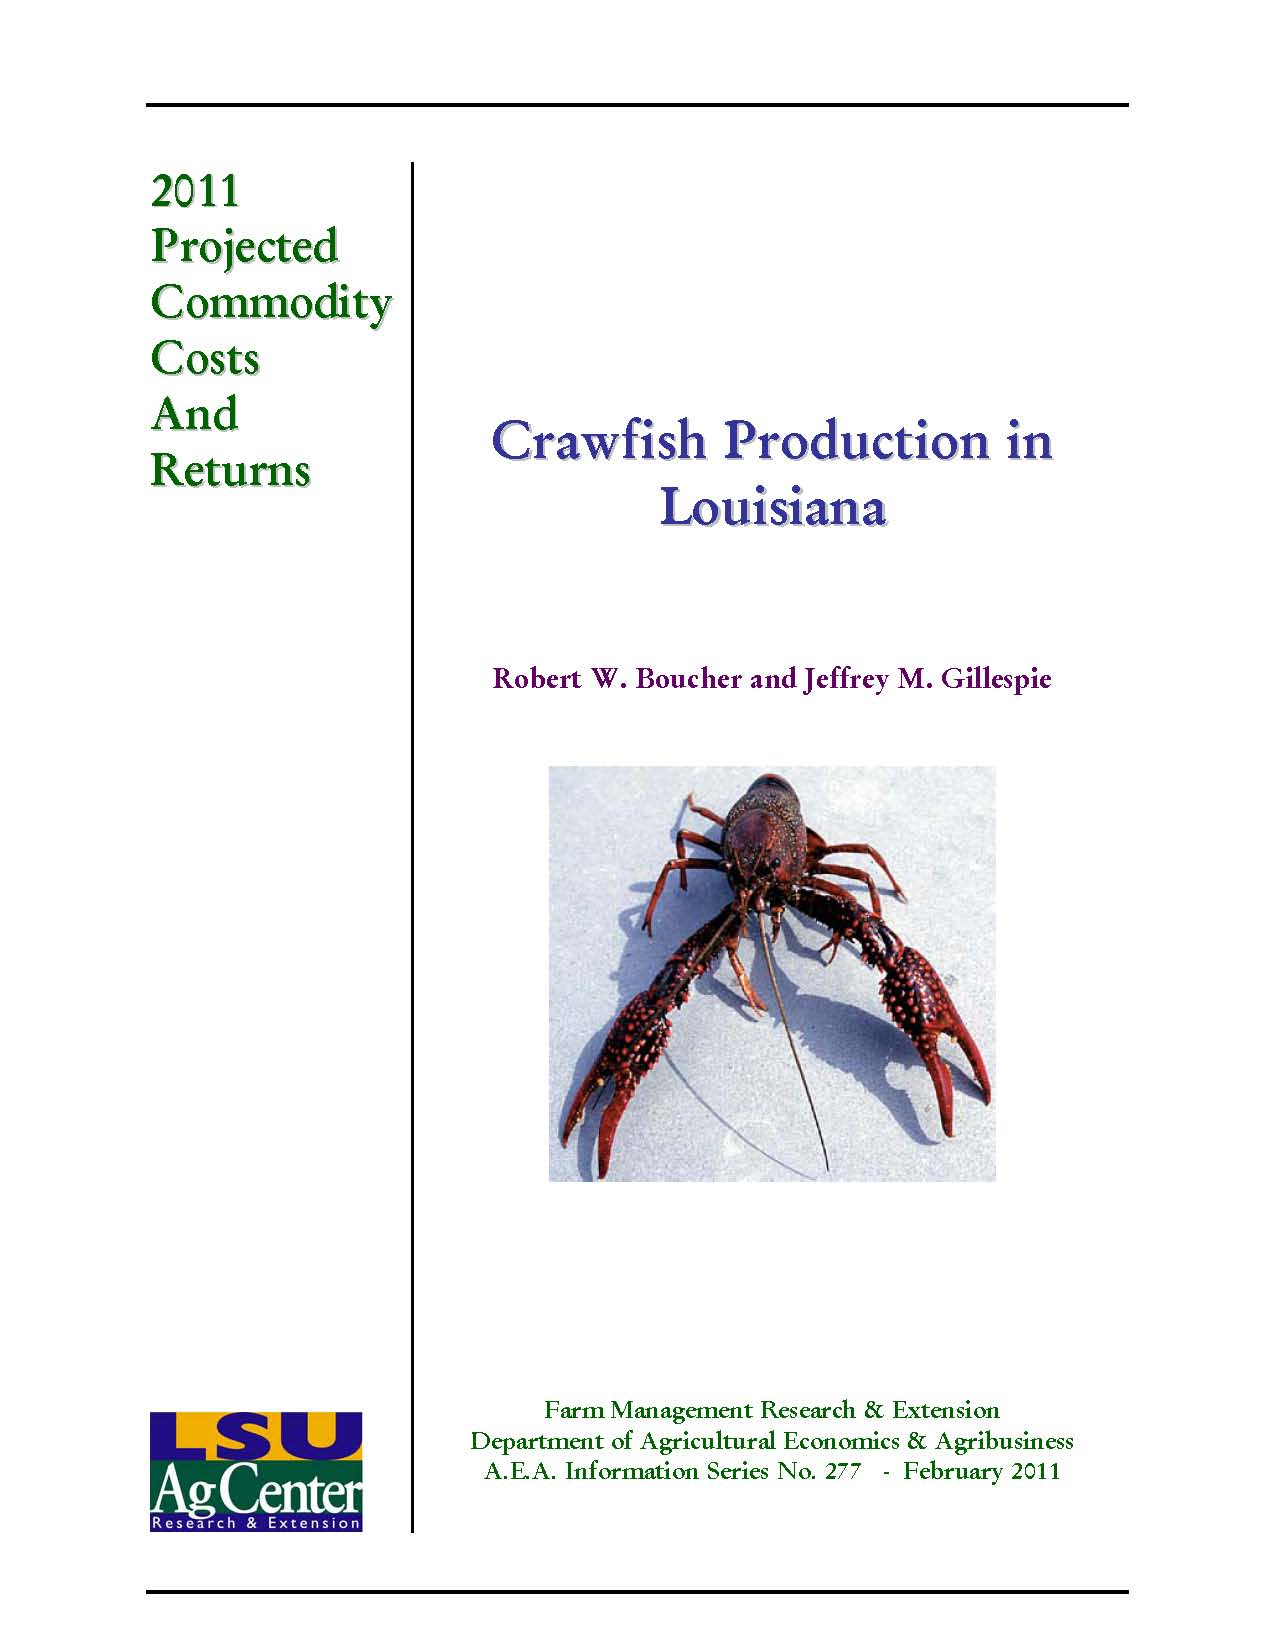 Projected Costs and Returns for Crawfish Production in Louisiana 2011